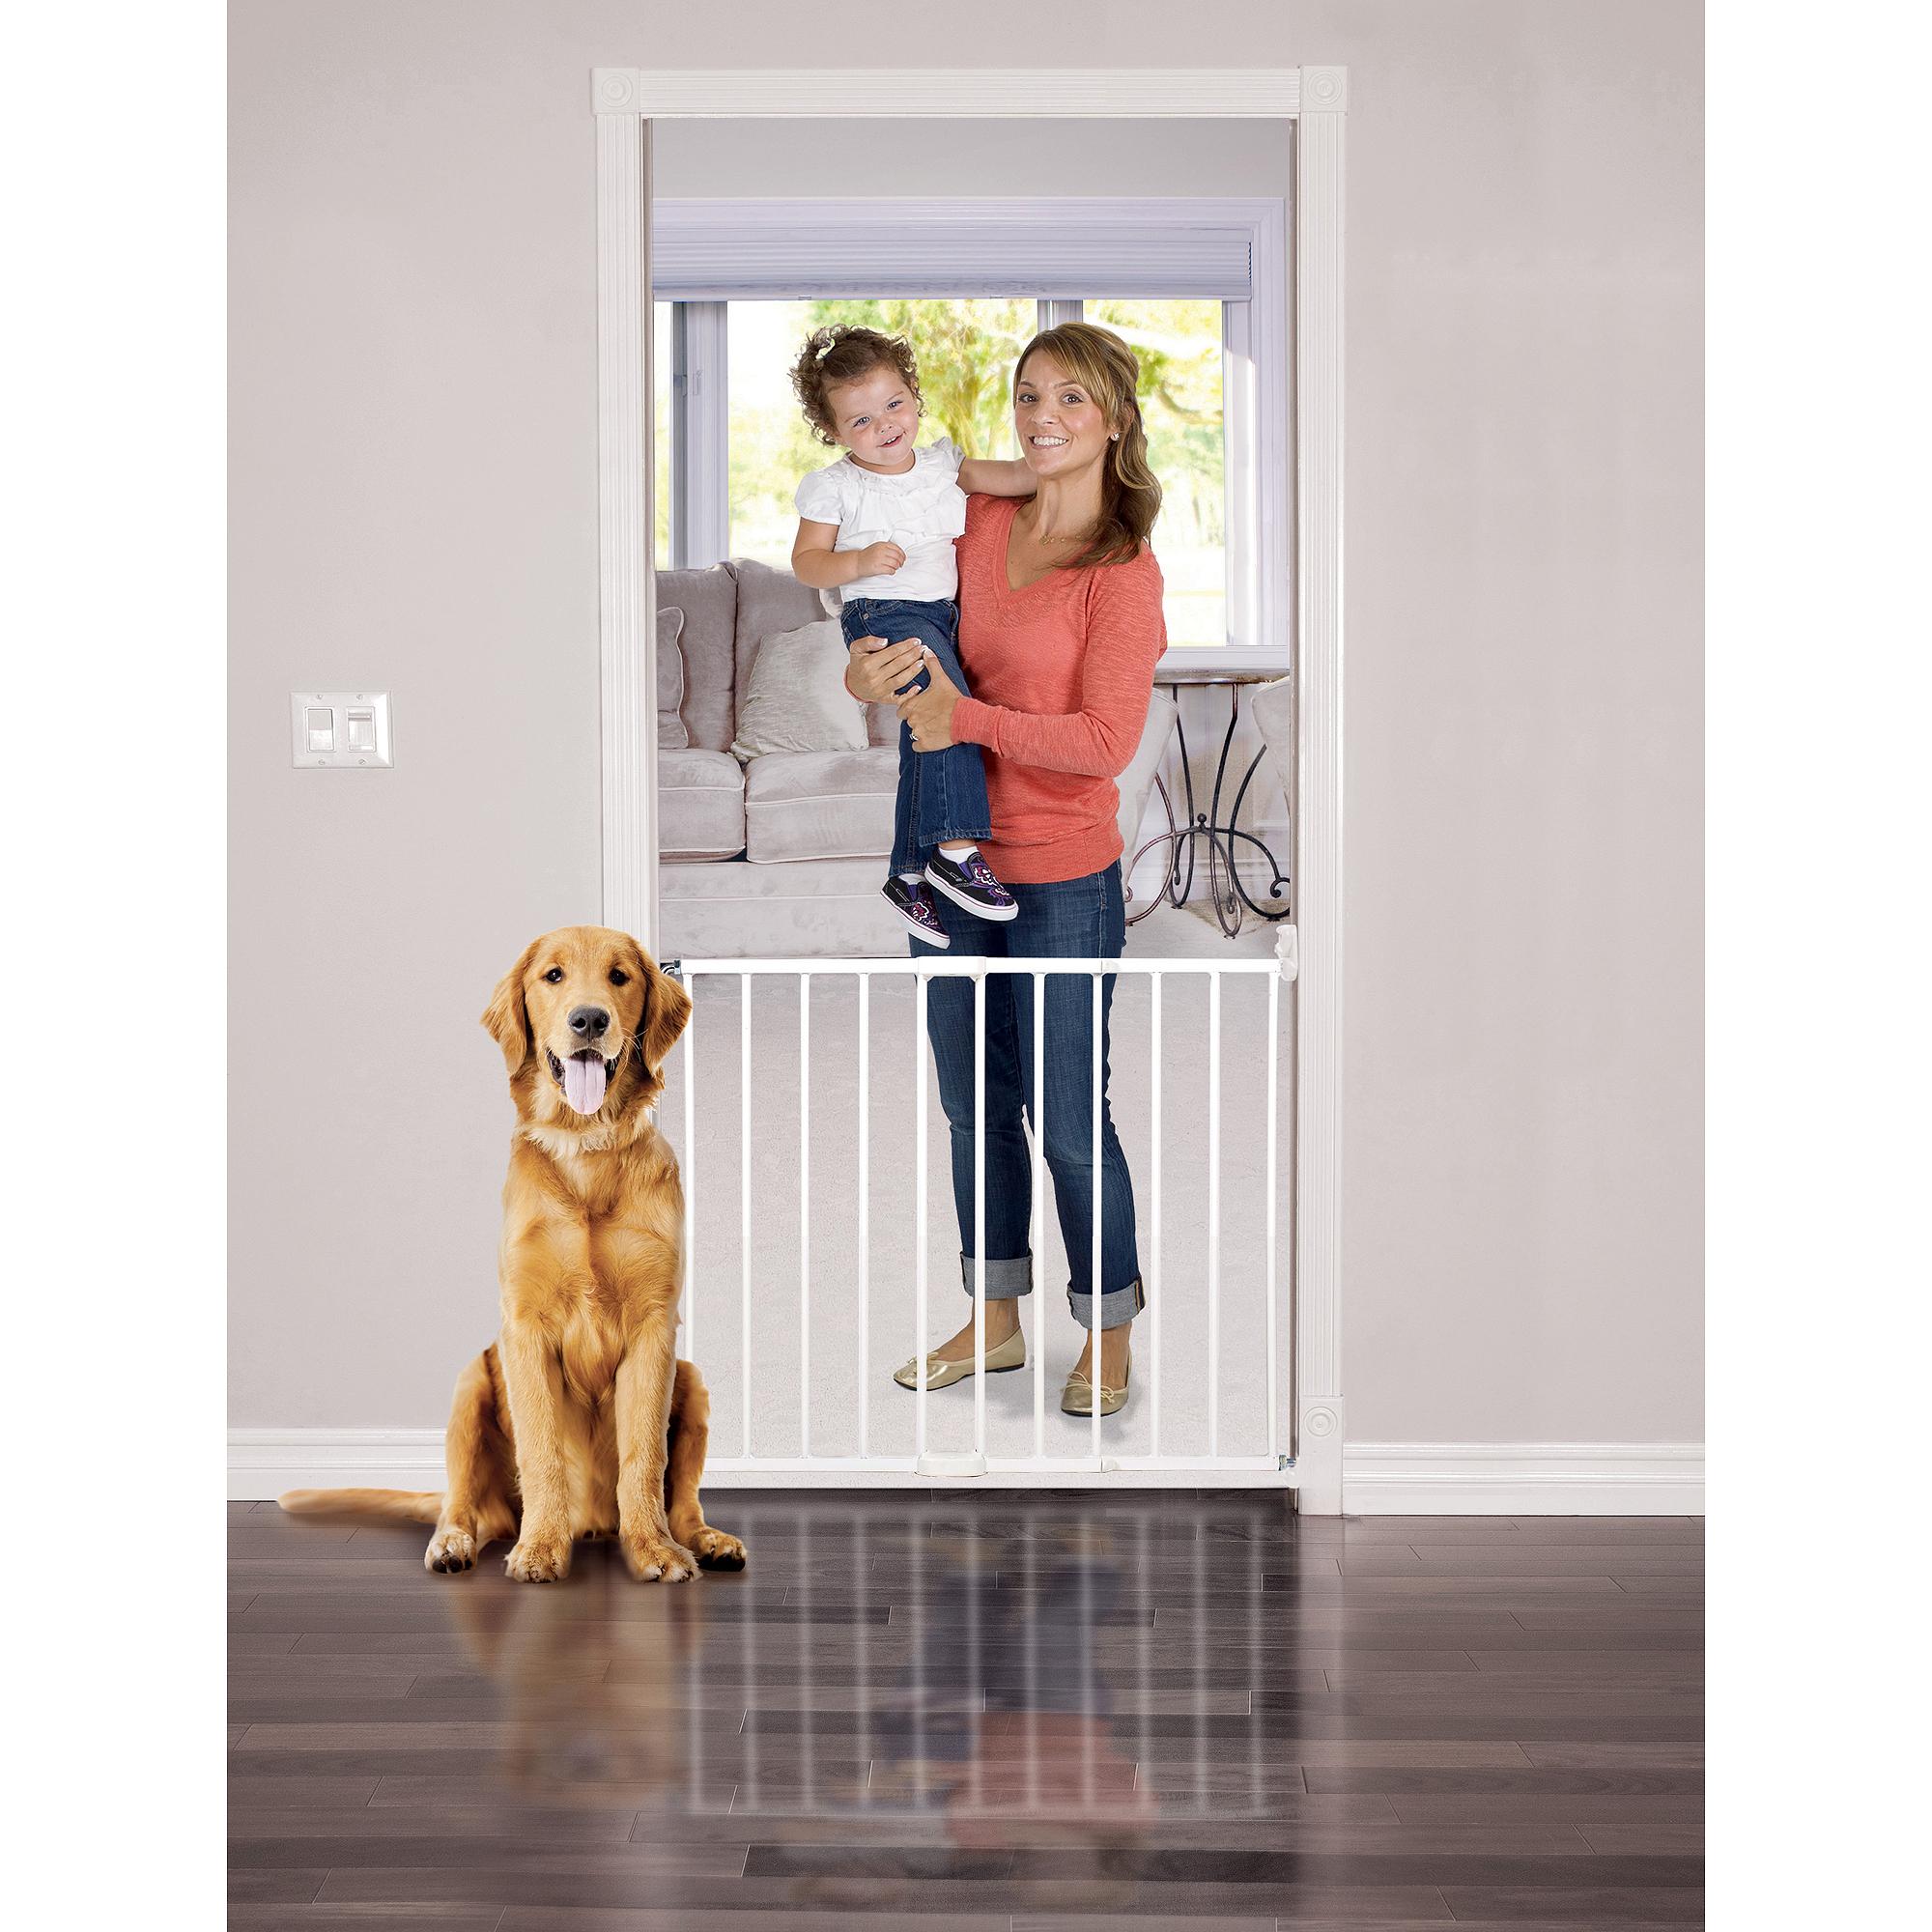 Baby Trend Swing Door Baby Gate 24 5 40 With Safety Lock